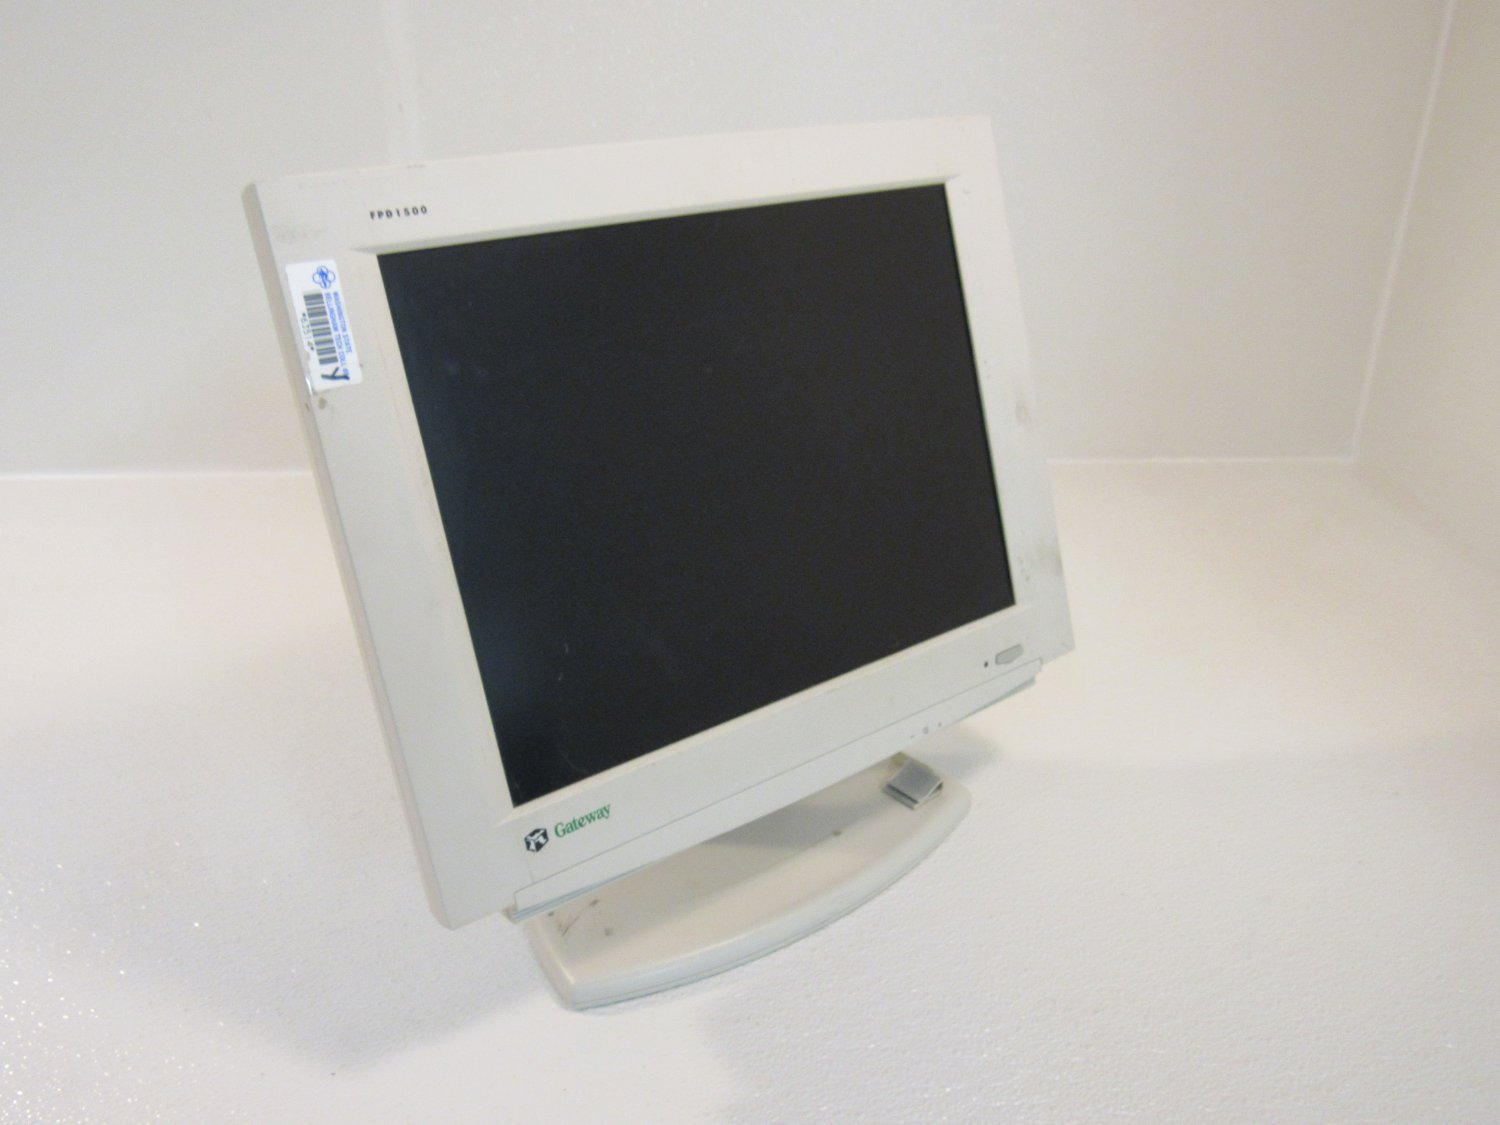 Gateway 15.1in Color Monitor Flat Screen LCD White 24V DC 1.2A FPD1500